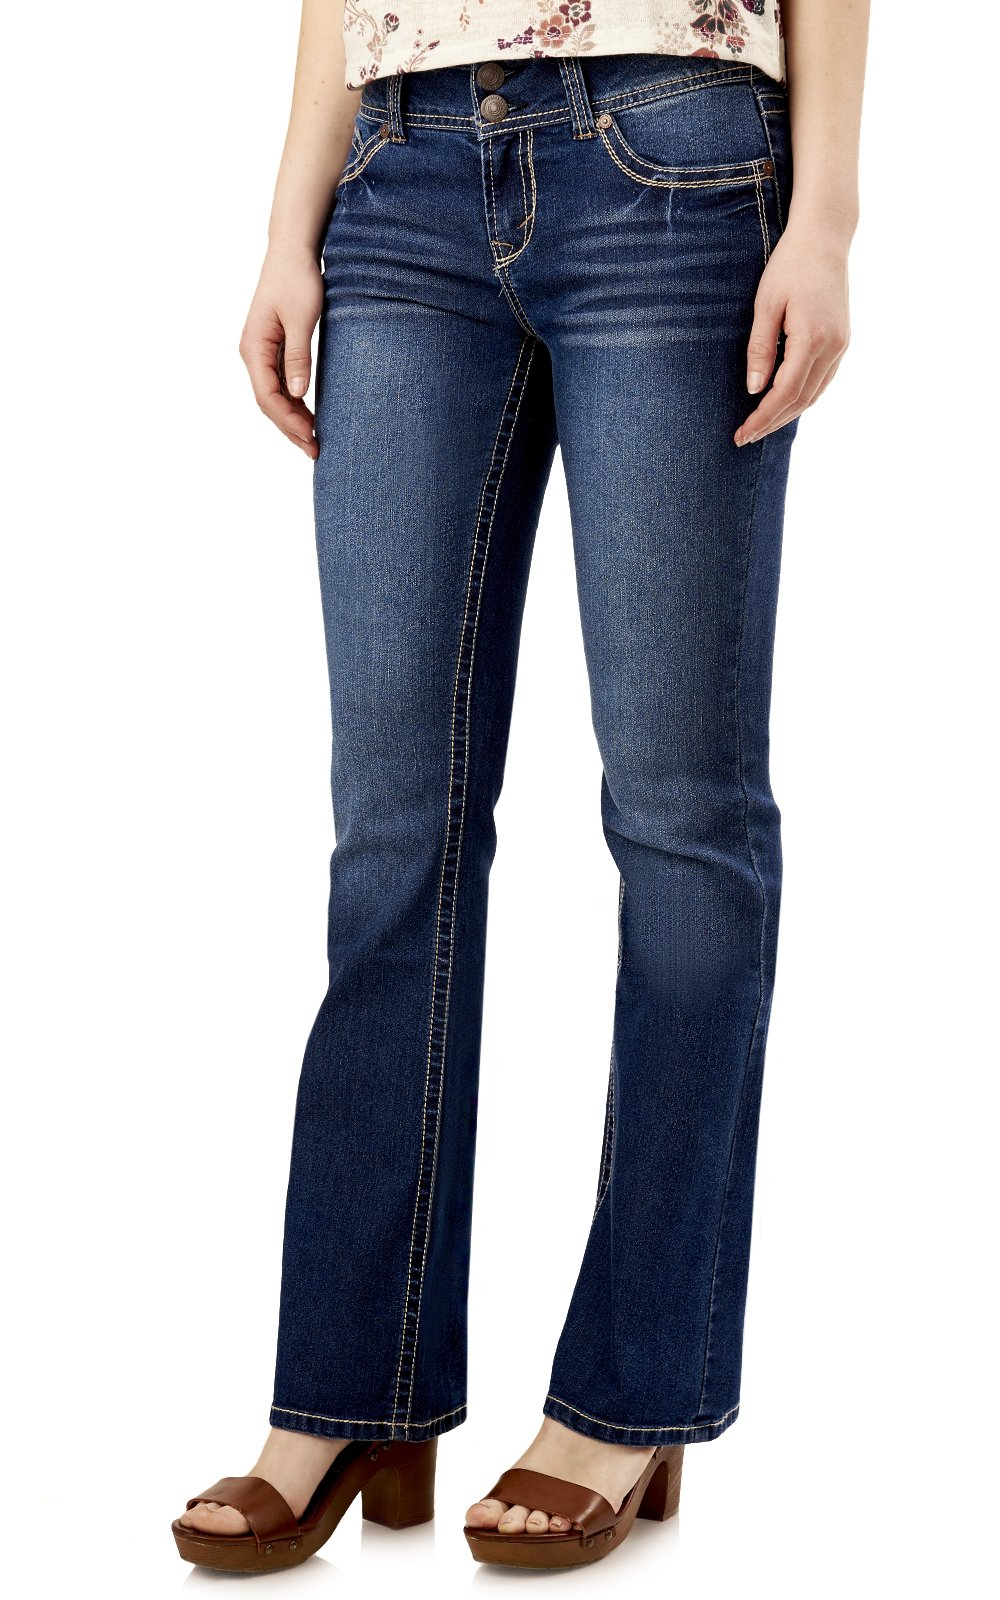 WallFlower Juniors Luscious Curvy Basic Bootcut Jeans in Addison Size:13 Long